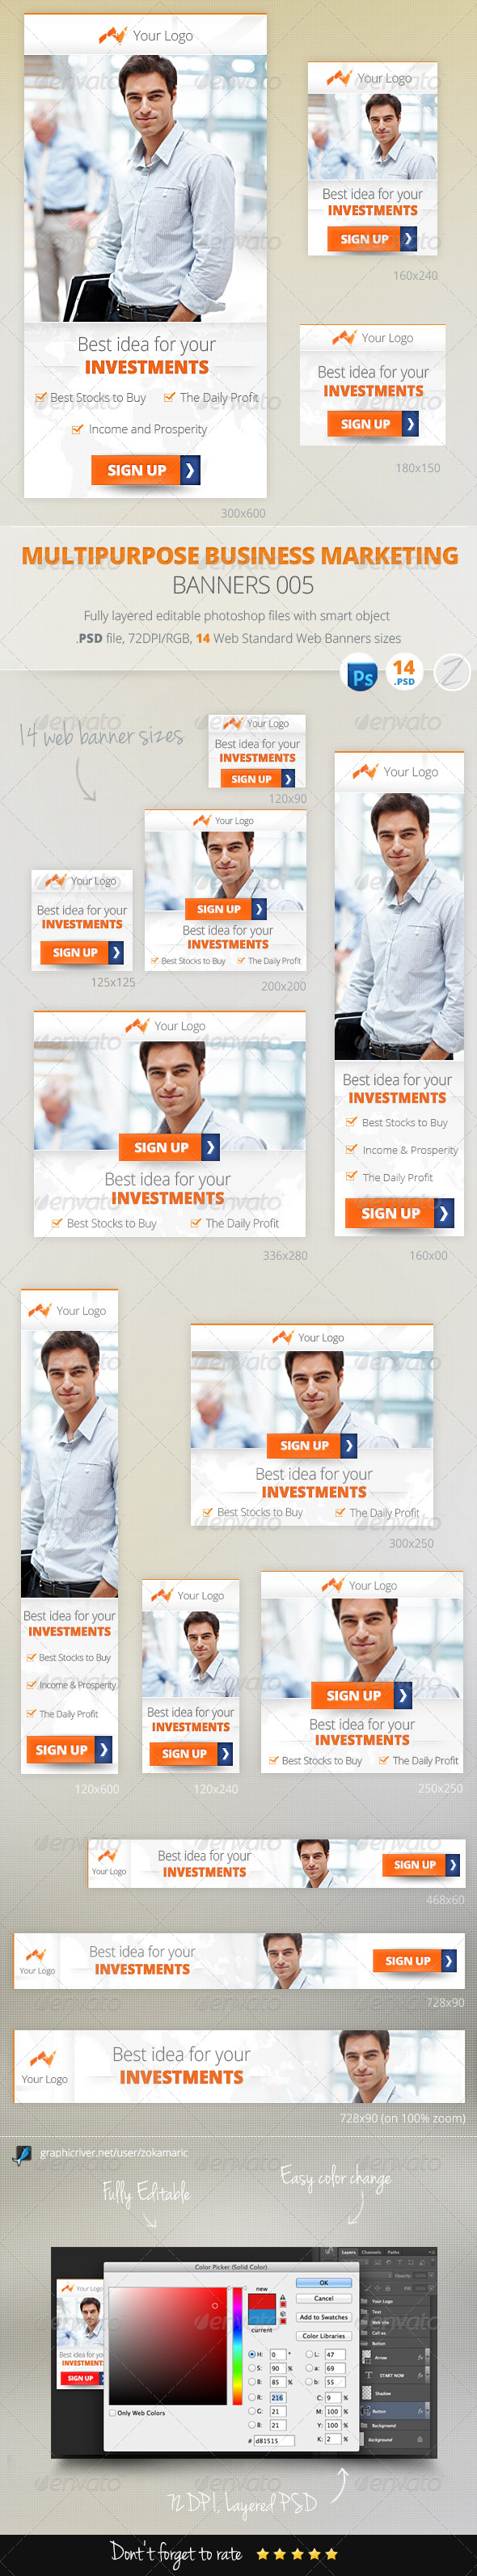 Multipurpose Business Marketing Banners 005 - Banners & Ads Web Elements